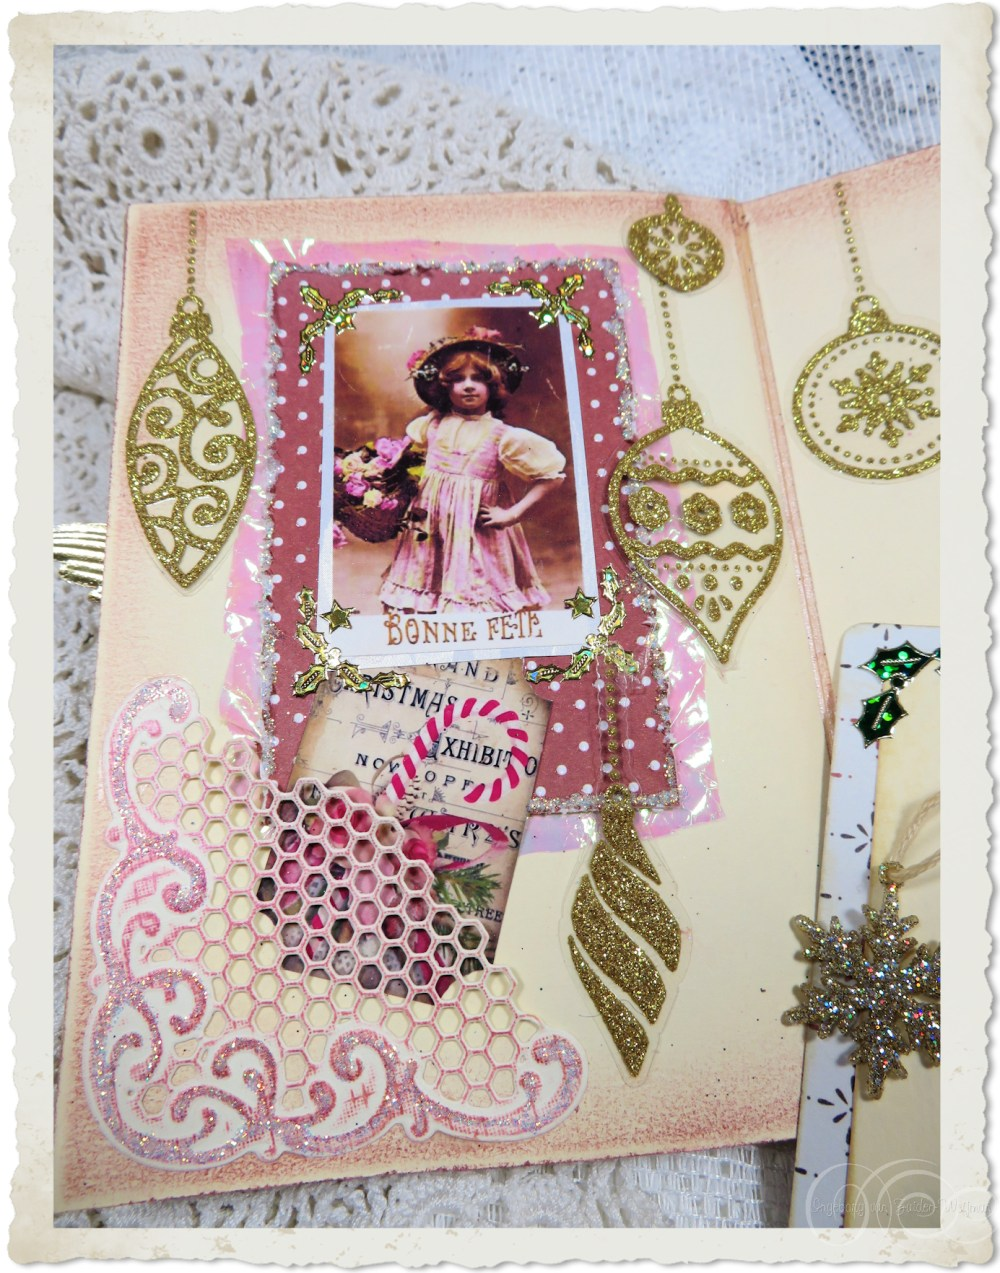 Vintage Christmas girl on the first inside page with pocket and golden ball stickers